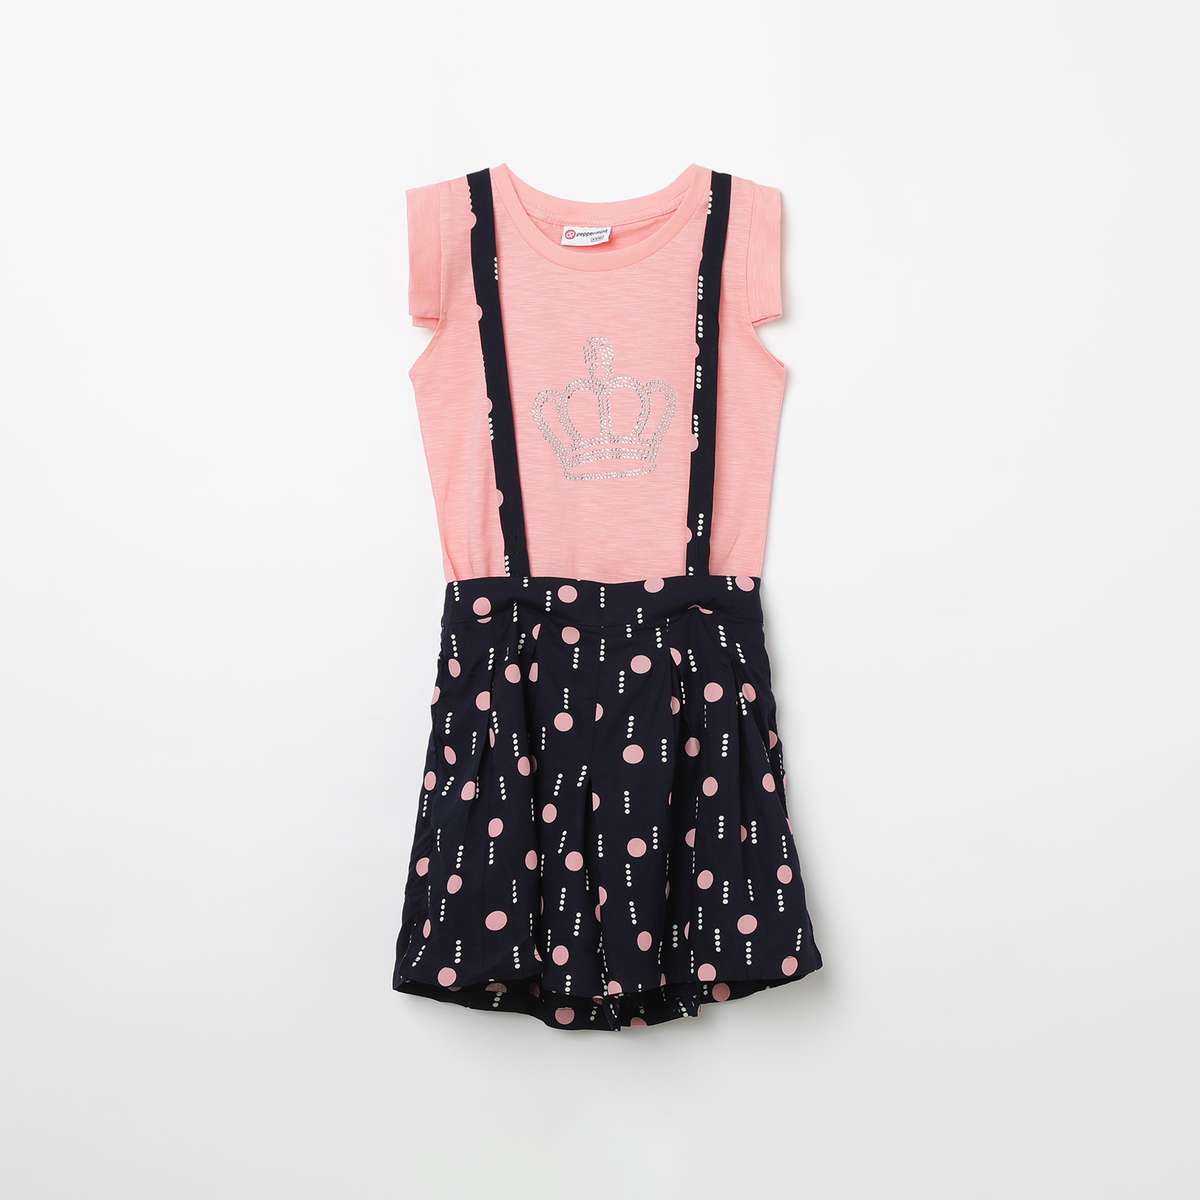 1.PEPPERMINT Printed Dungaree Skirt with Embellished Top